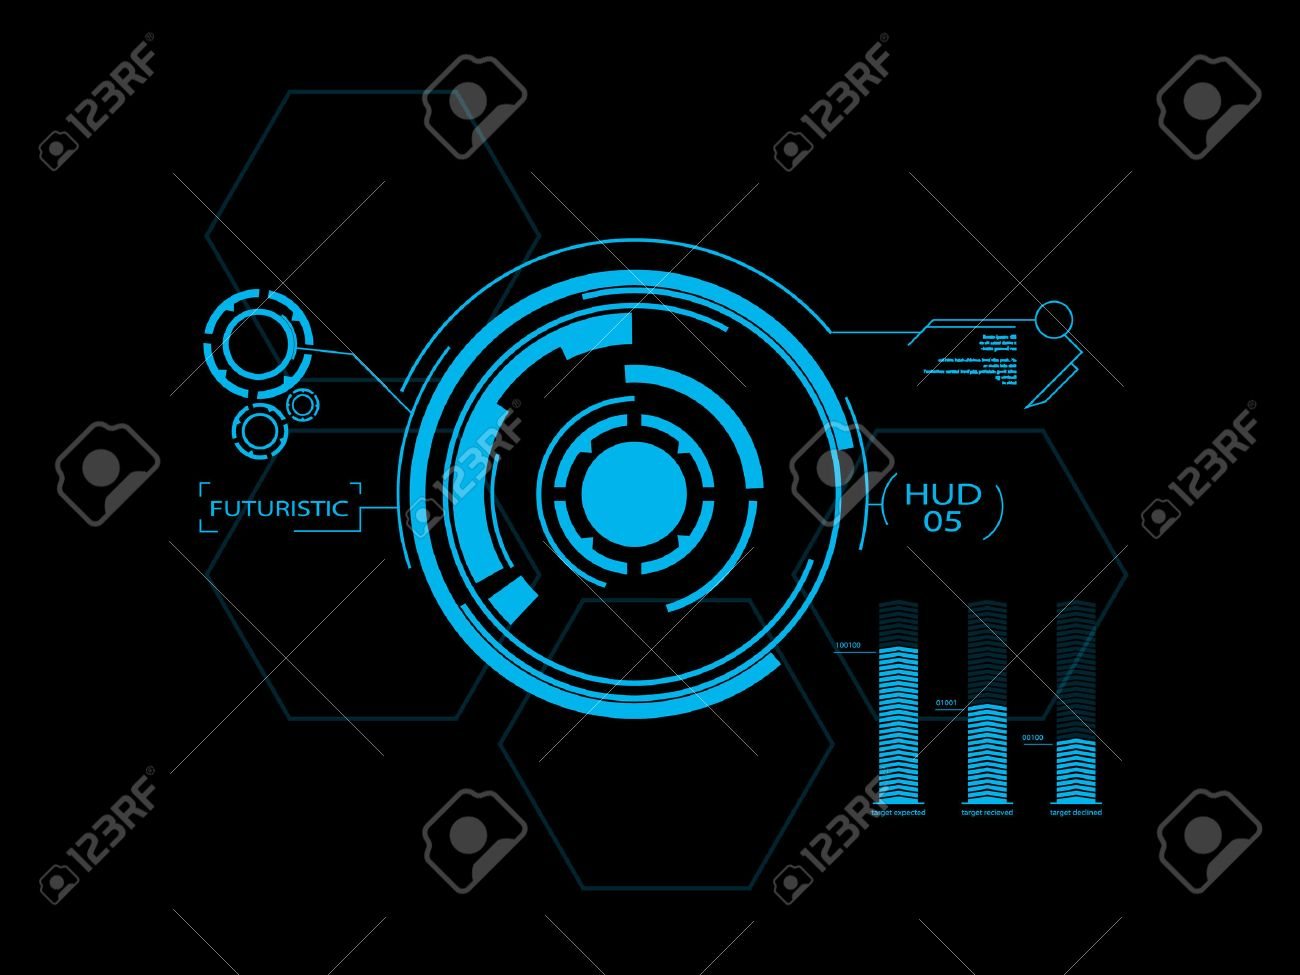 Futuristic blue virtual graphic touch user interface HUD - 25658116